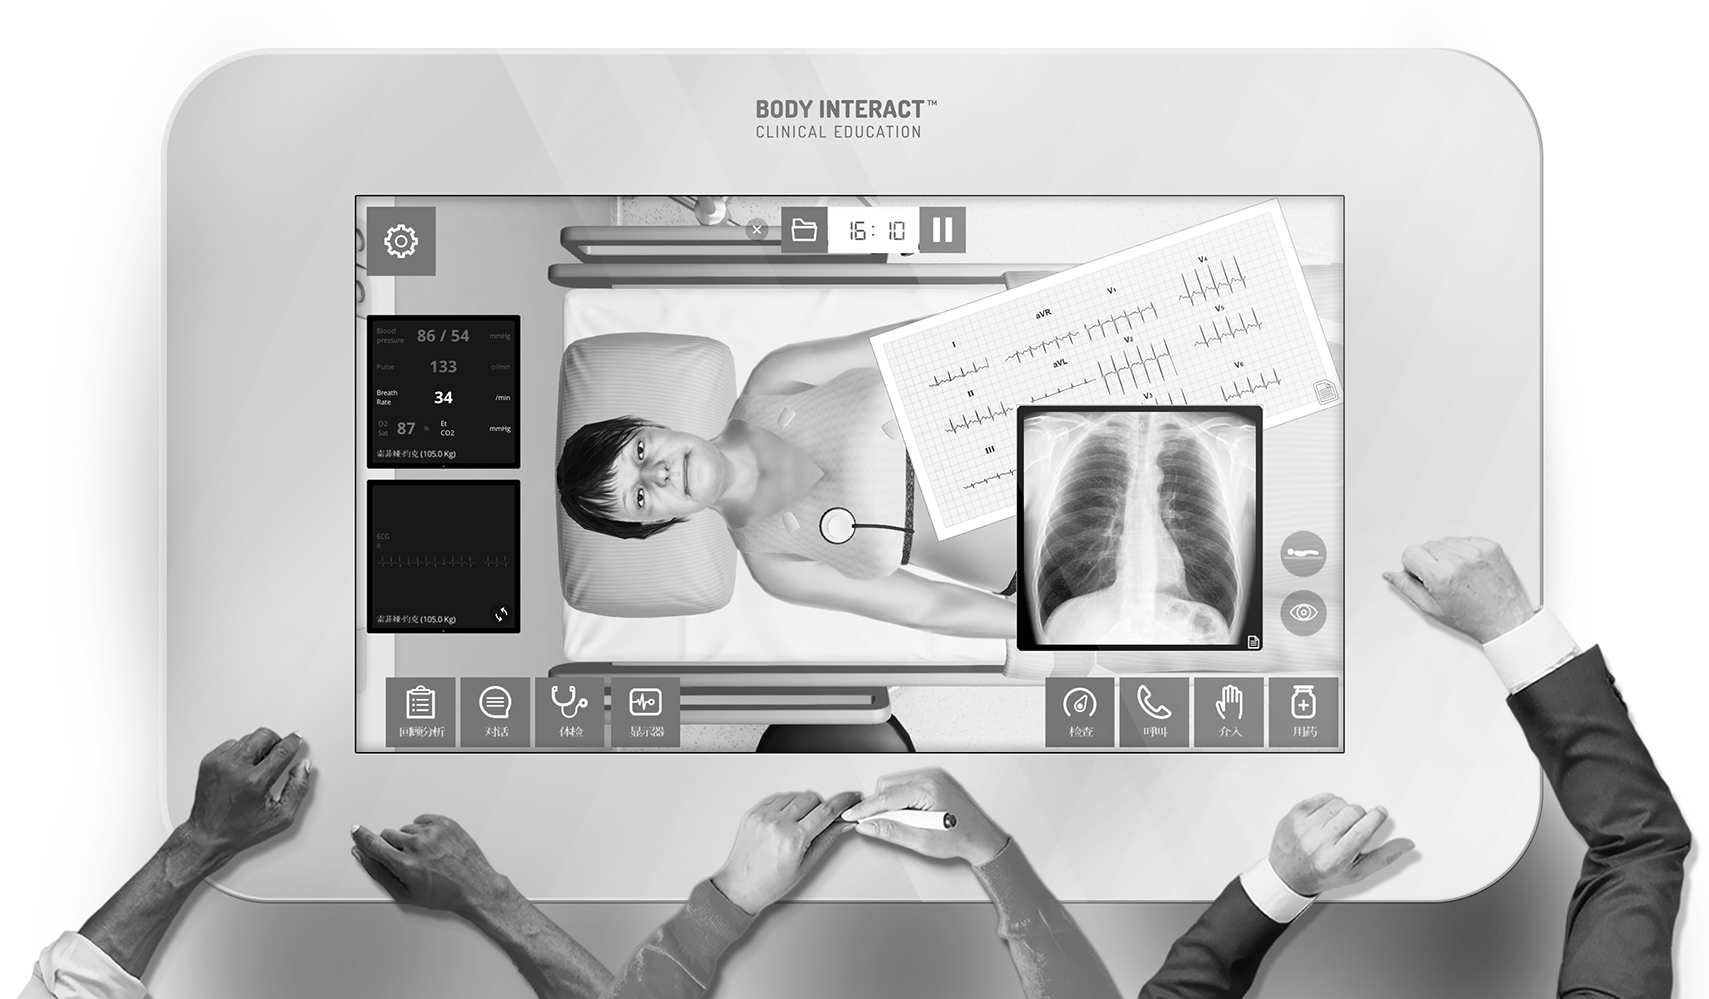 Body Interact - Simulateur de Raisonnement Clinique -Twin Medical